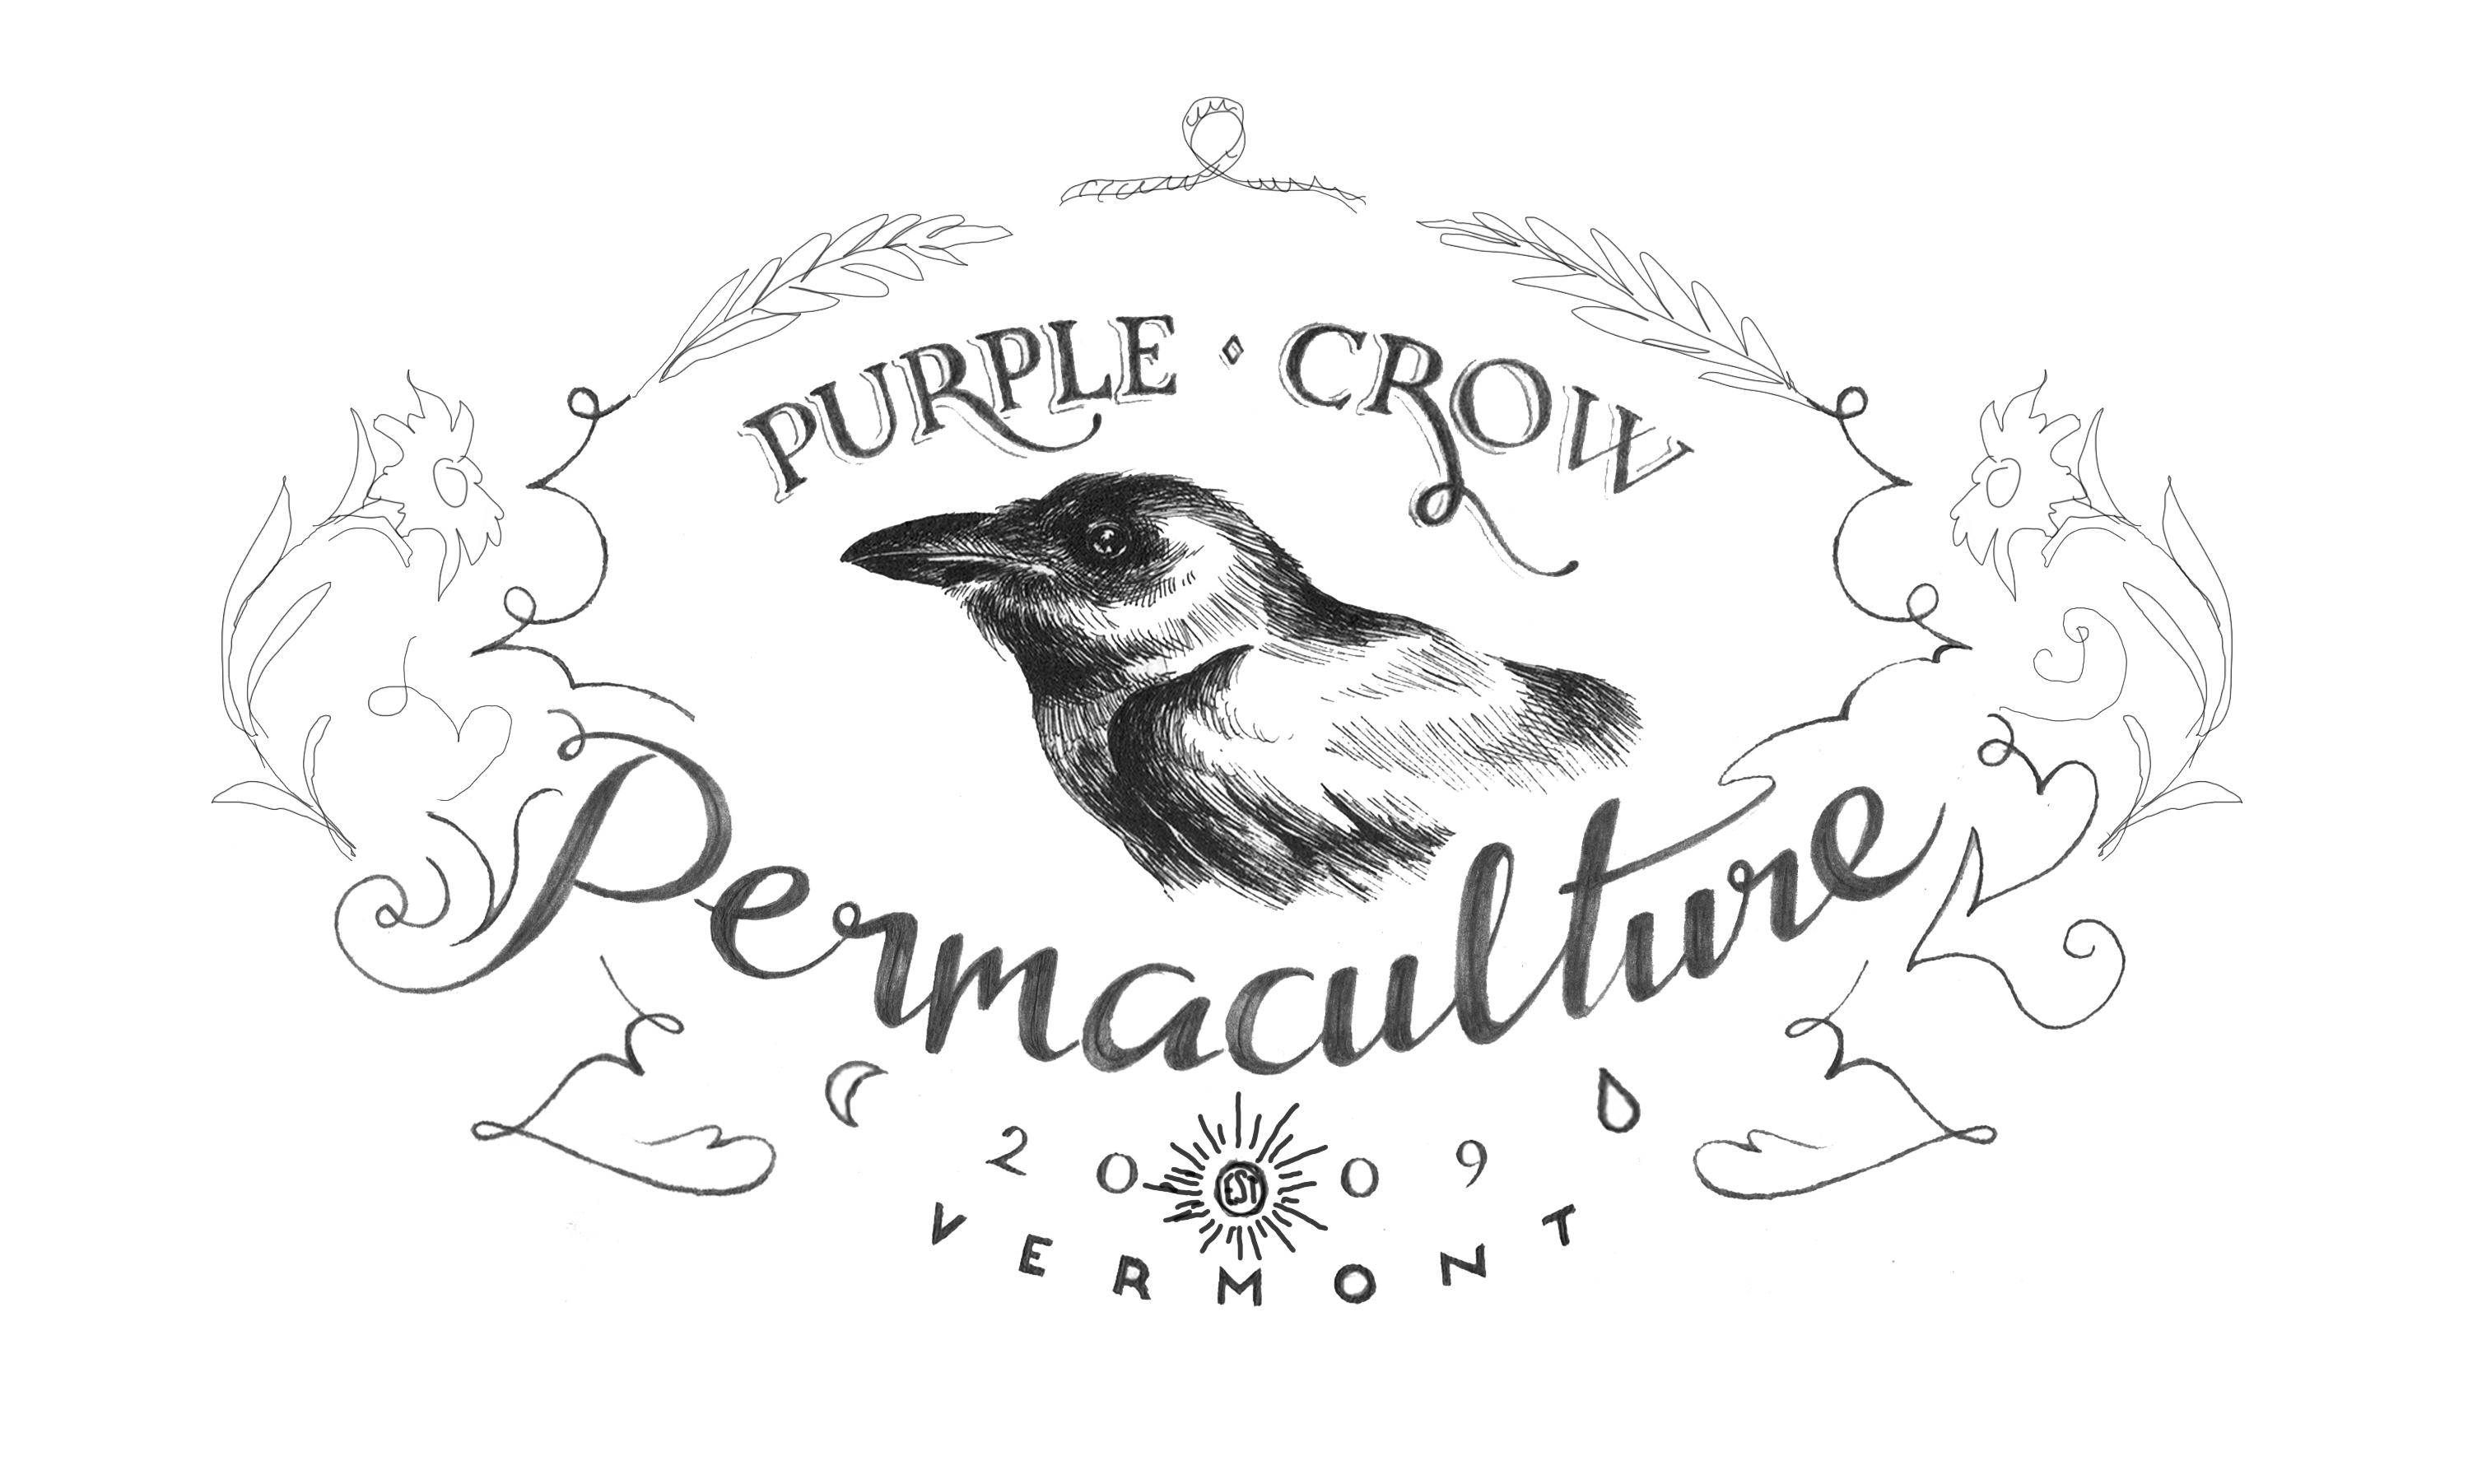 Purple Crow Permaculture - image 10 - student project